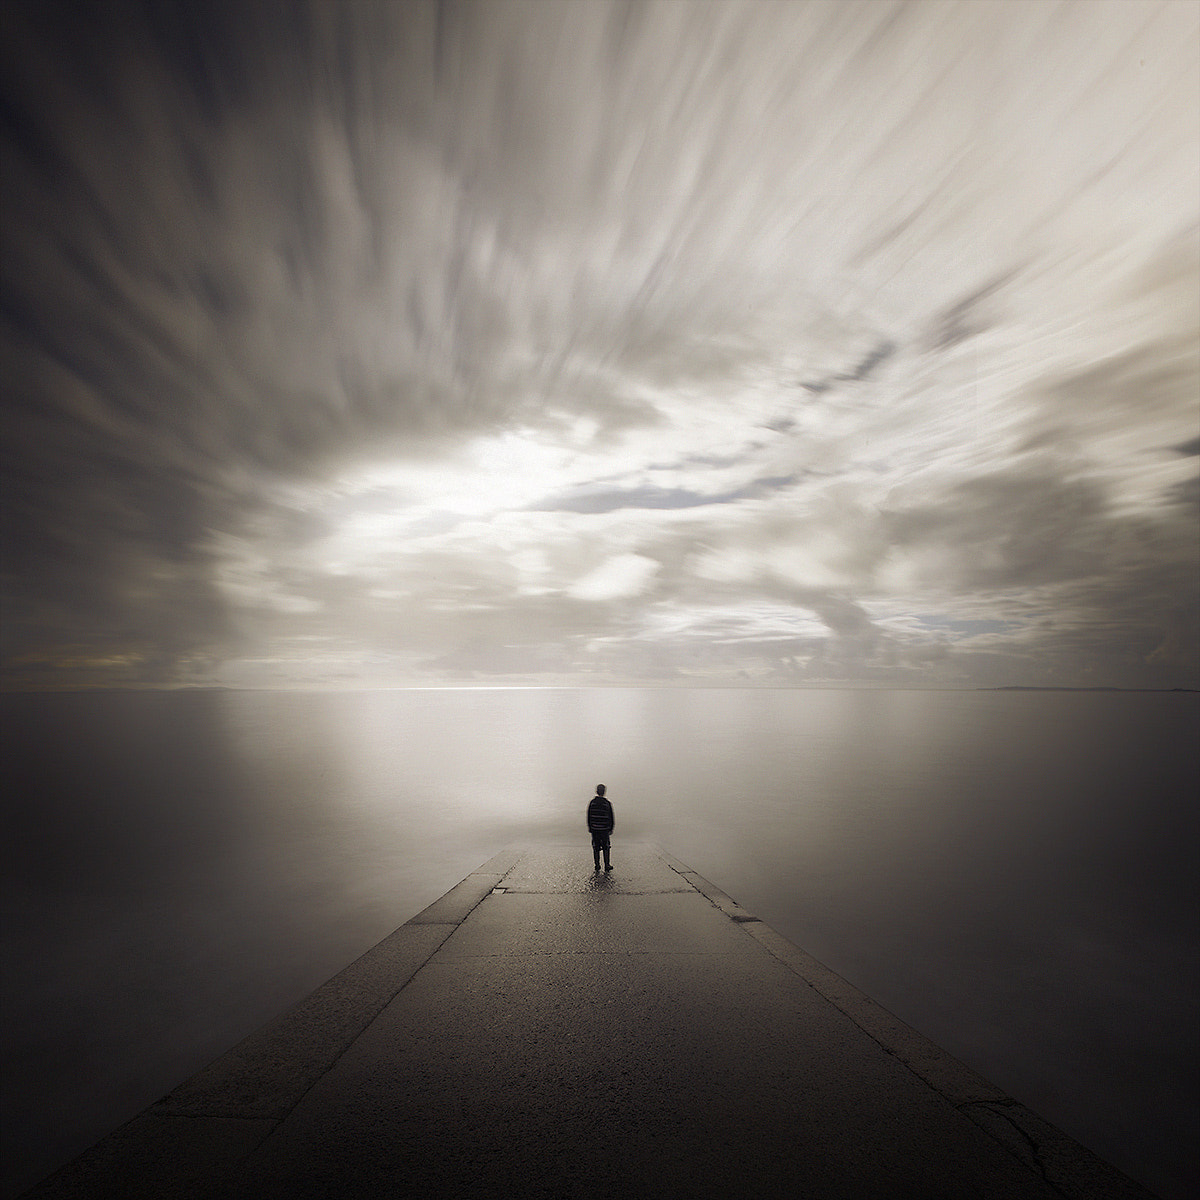 Photograph ≈ waiting III by Andy Lee on 500px